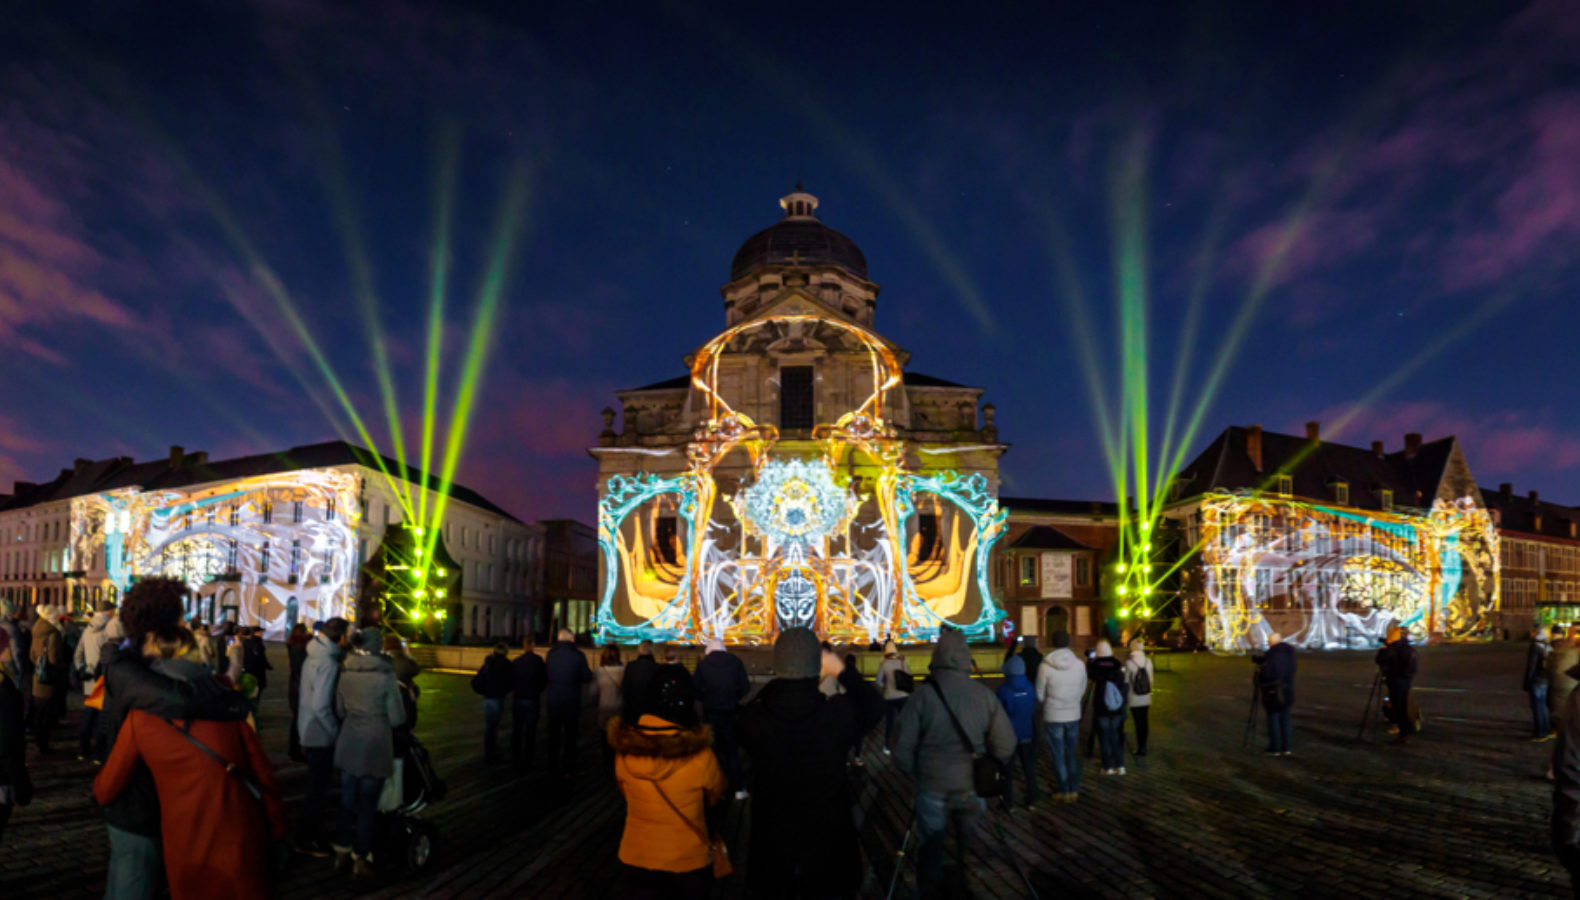 The Light Festival 2018